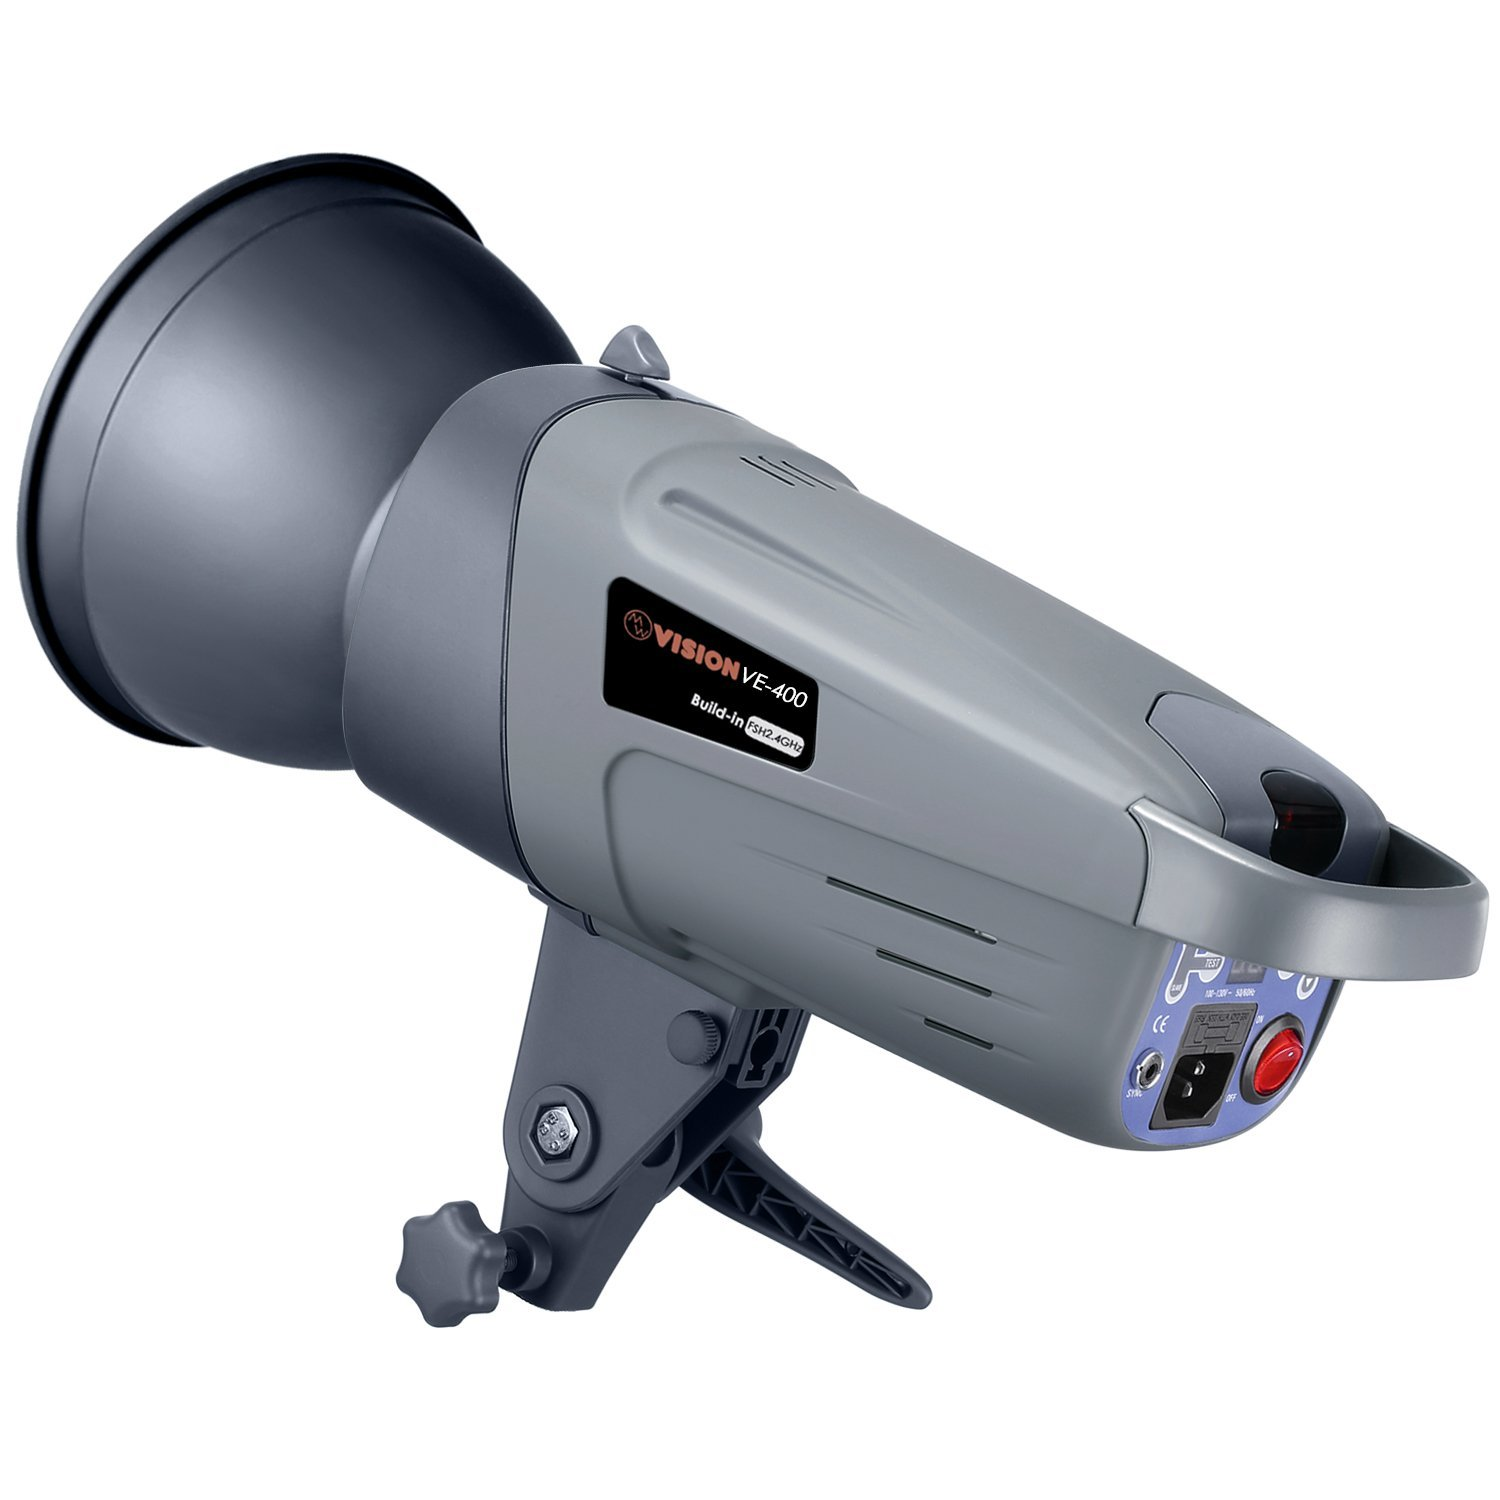 Neewer 400W GN70 Studio Flash Strobe with Built-in 2.4G Wireless Receiver System, Recycle time 0.4-1.8 Seconds, Bowens Mount, VE-400 Plus, German Engineered